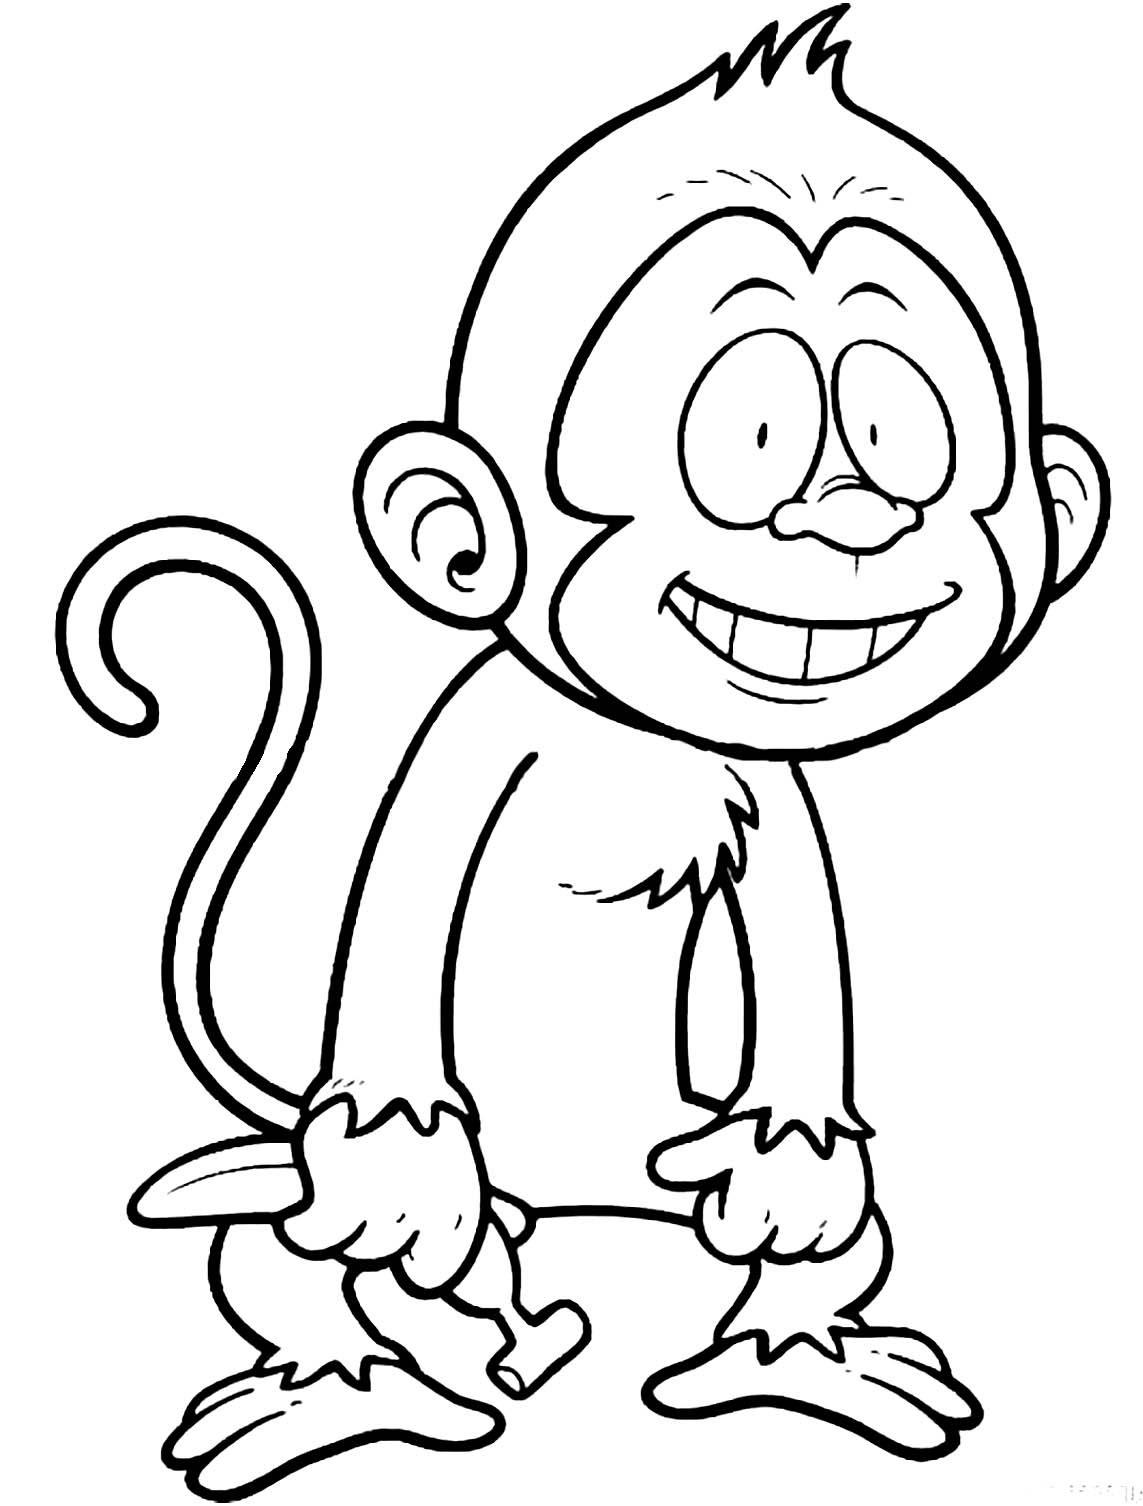 image regarding Printable Monkeys titled Monkeys for young children - Monkeys Youngsters Coloring Web pages